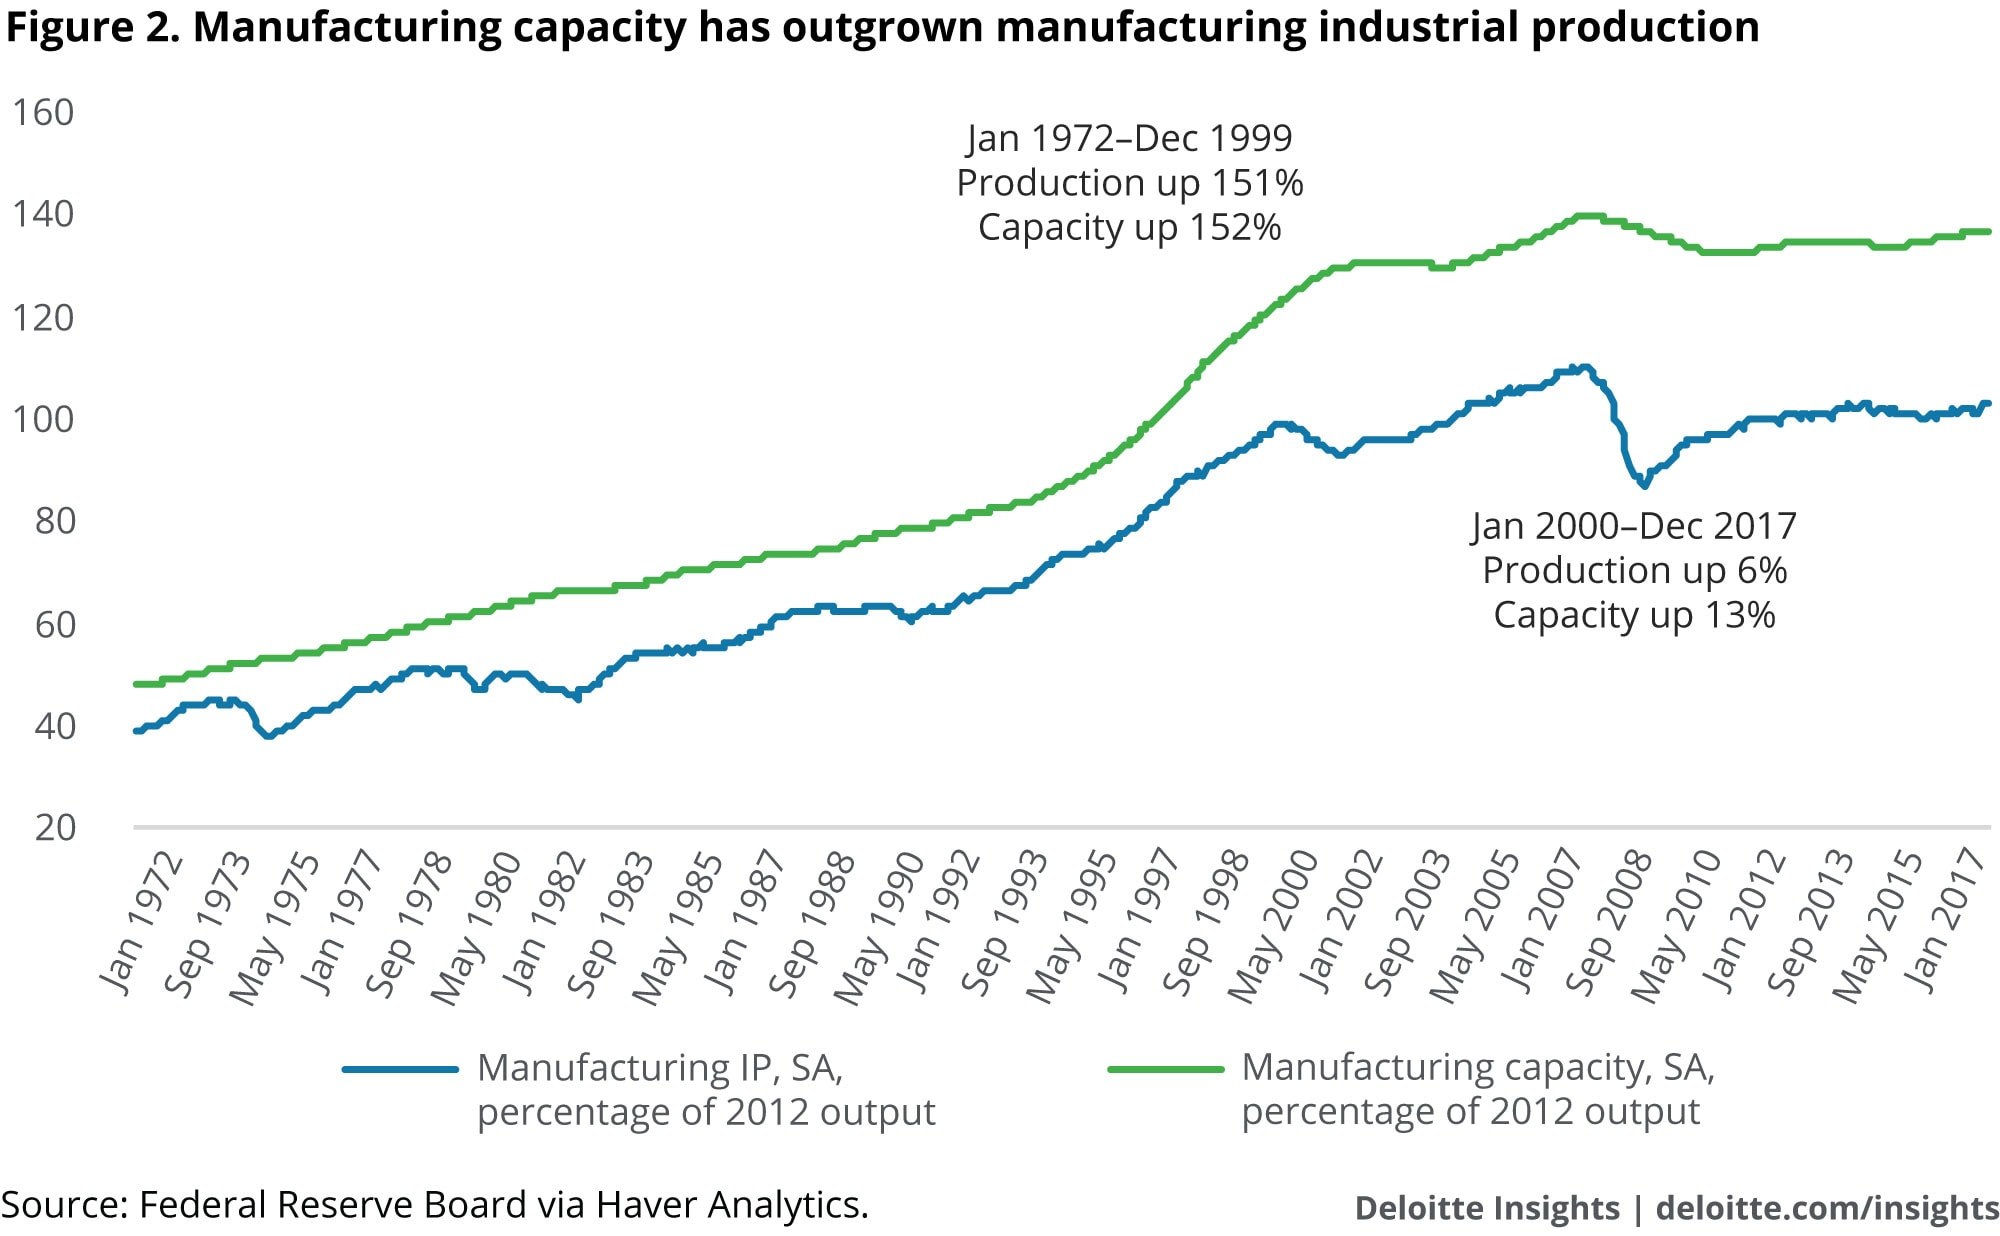 Manufacturing capacity has outgrown manufacturing industrial production